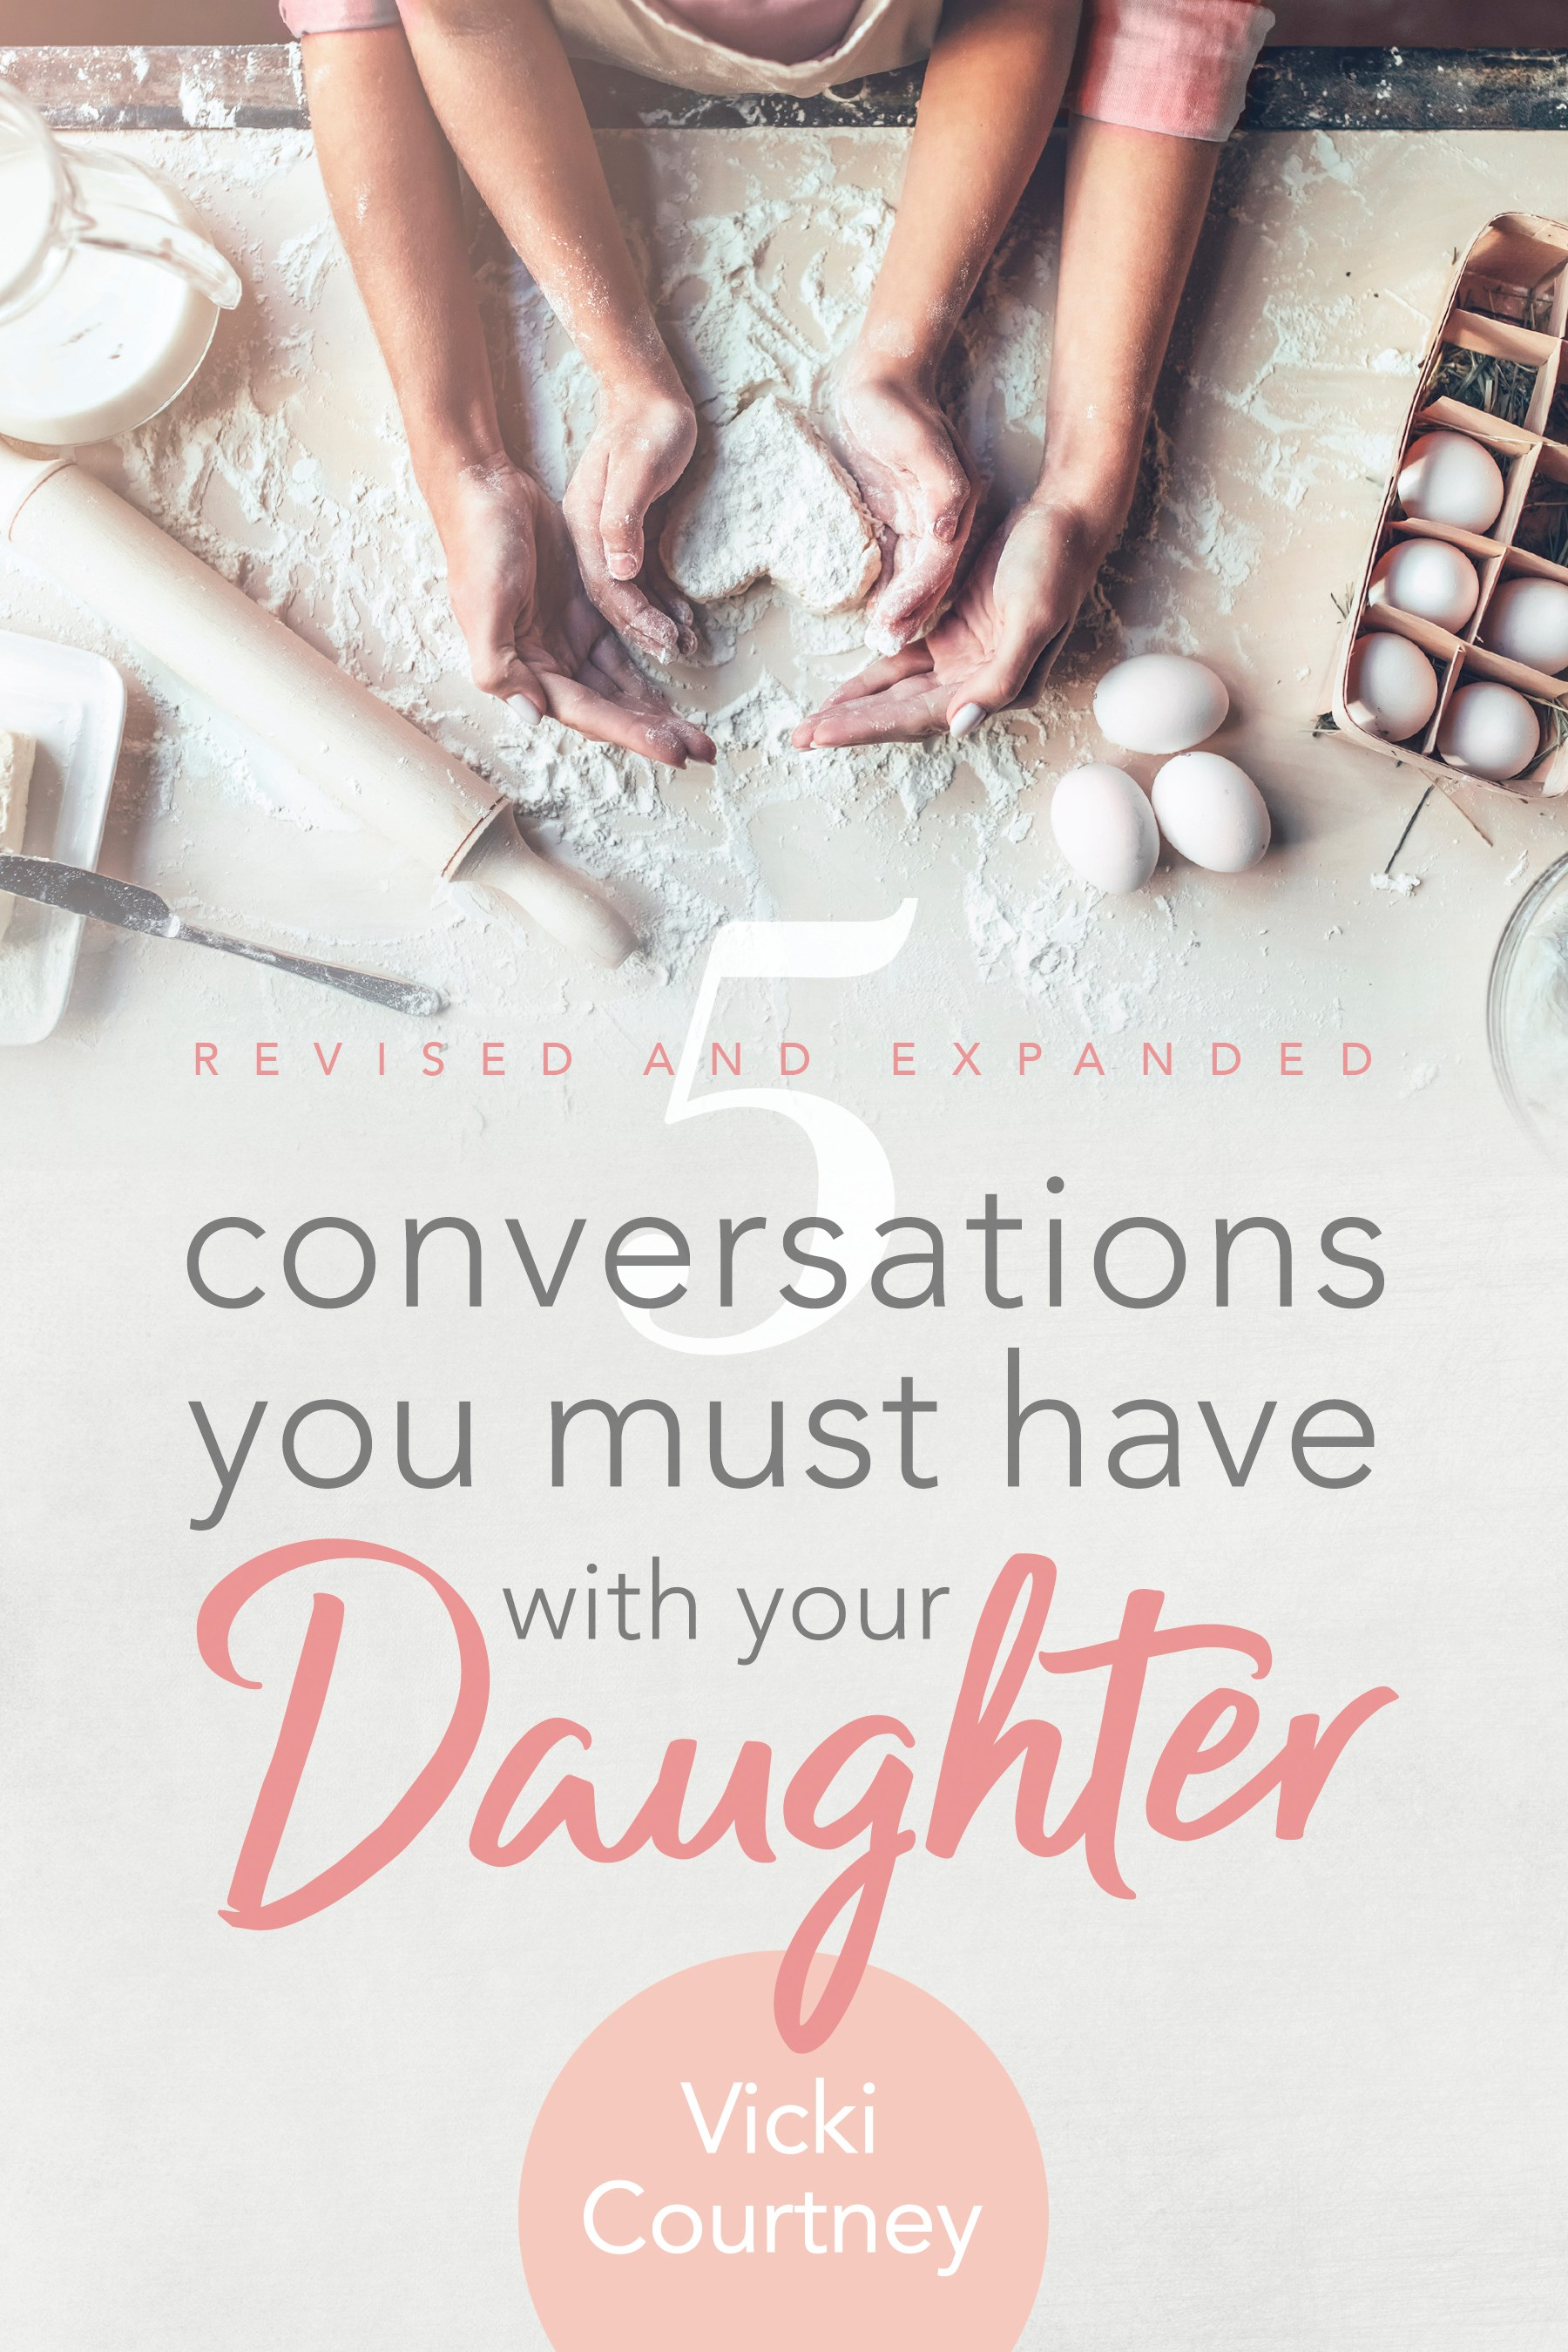 5 Conversations You Must Have With Your Daughter (Revised And Expanded)